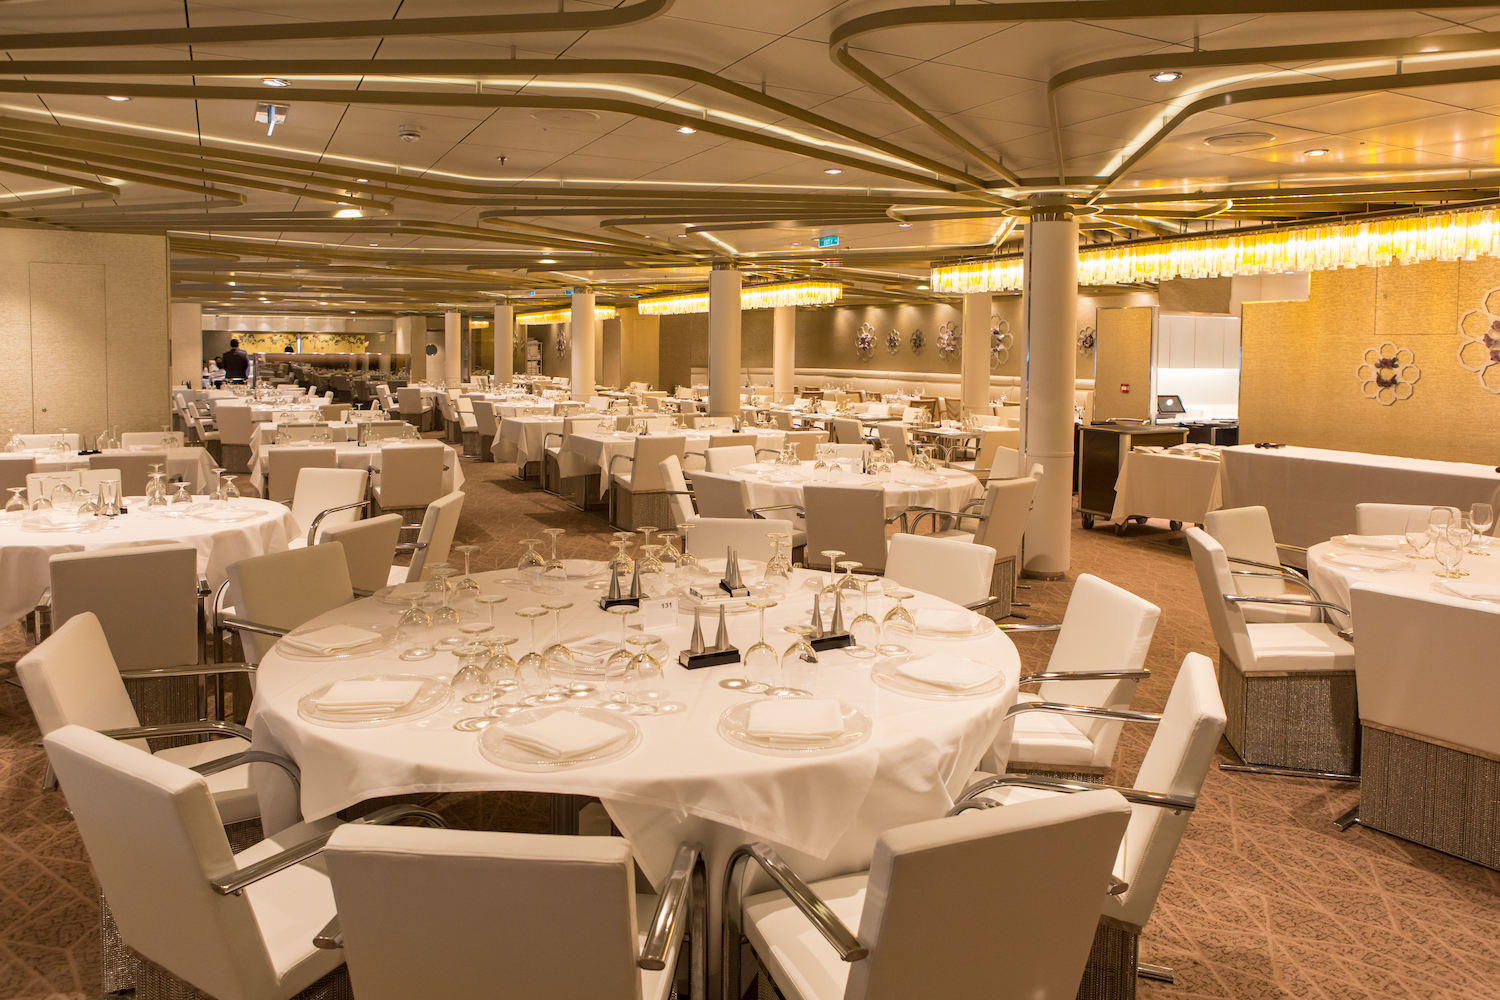 Anthem of the Seas Dining Room Chic